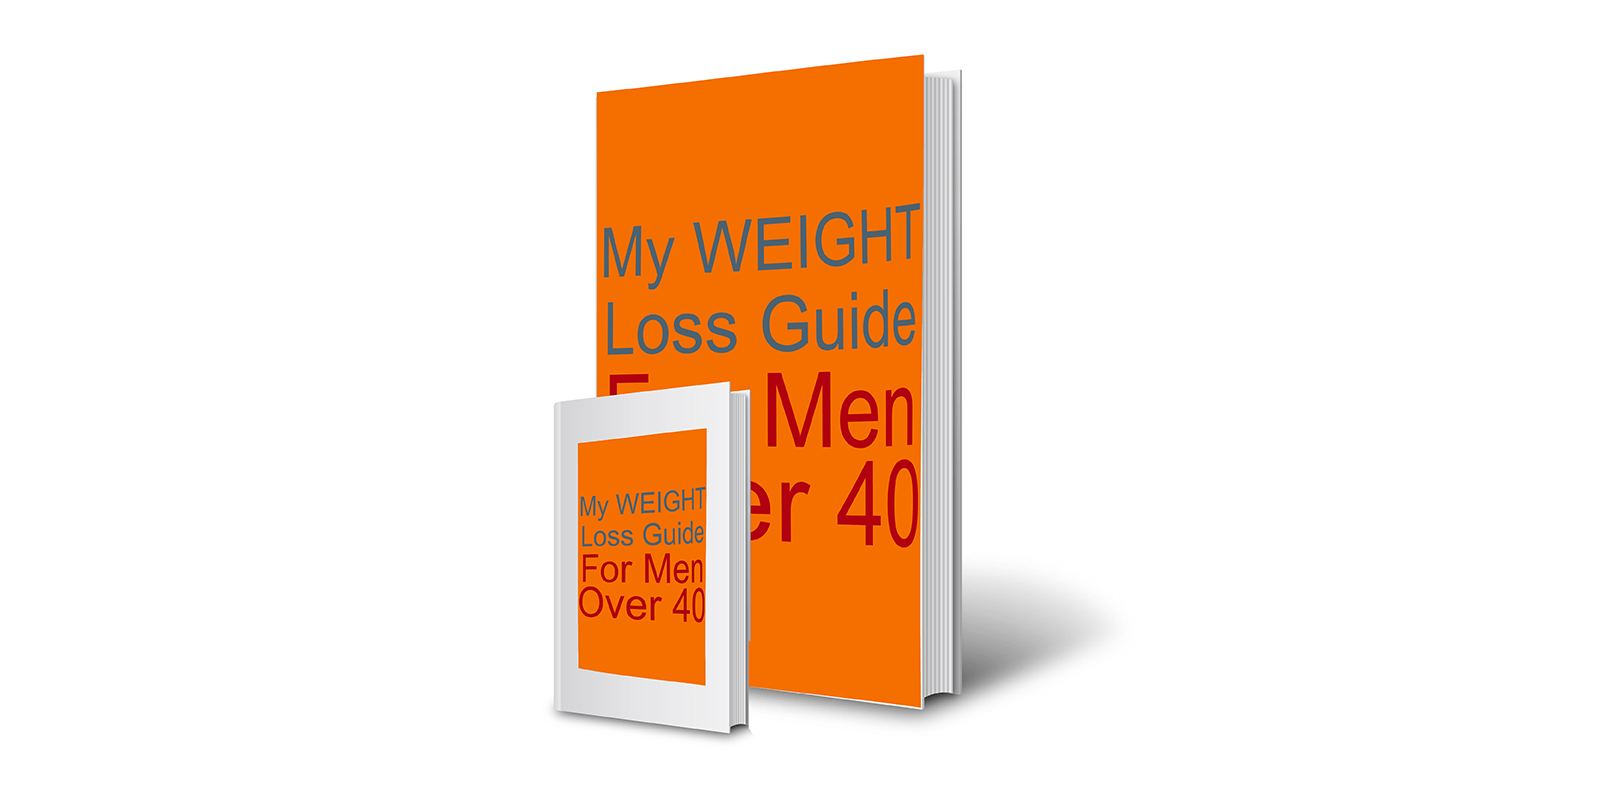 Weight Loss Guide For Men Over 40 review